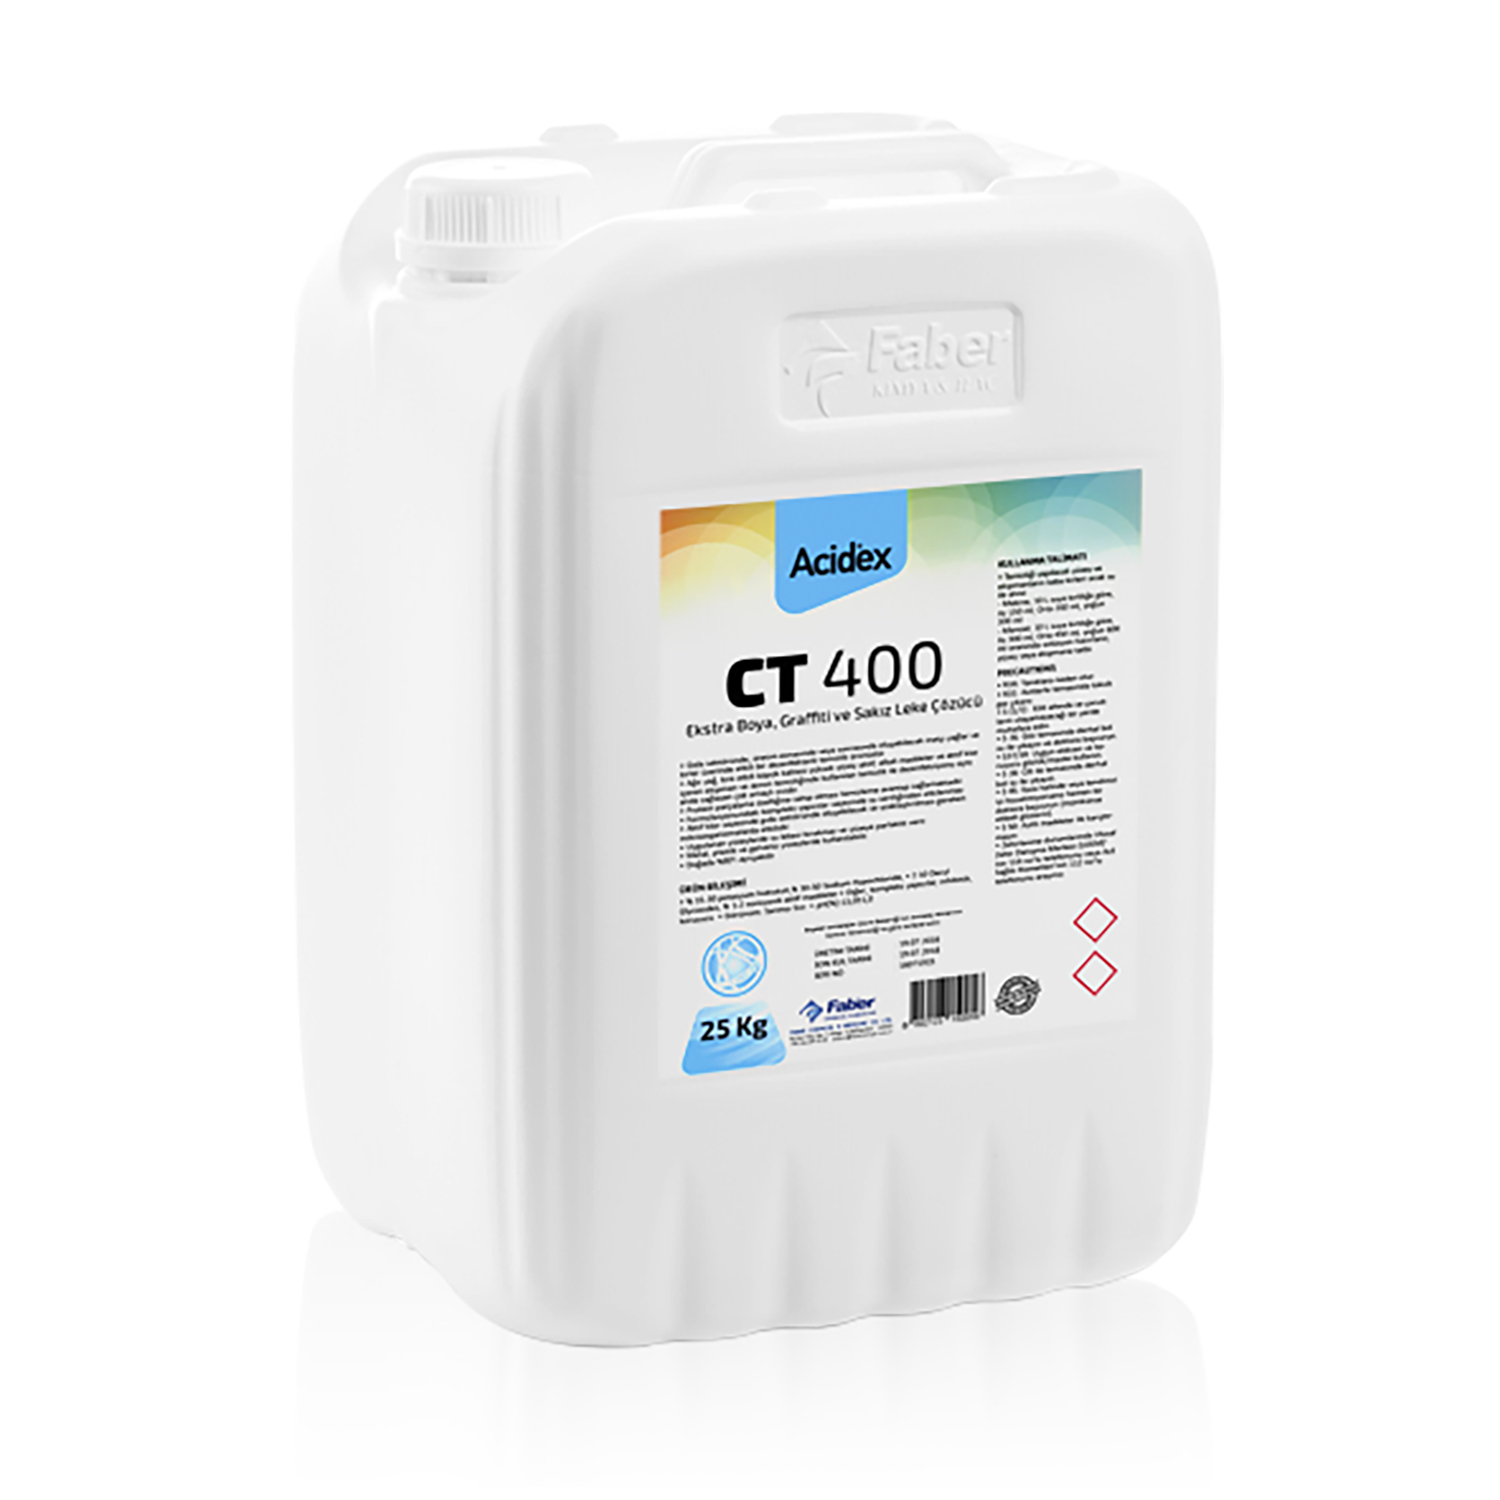 Acidex CT 400